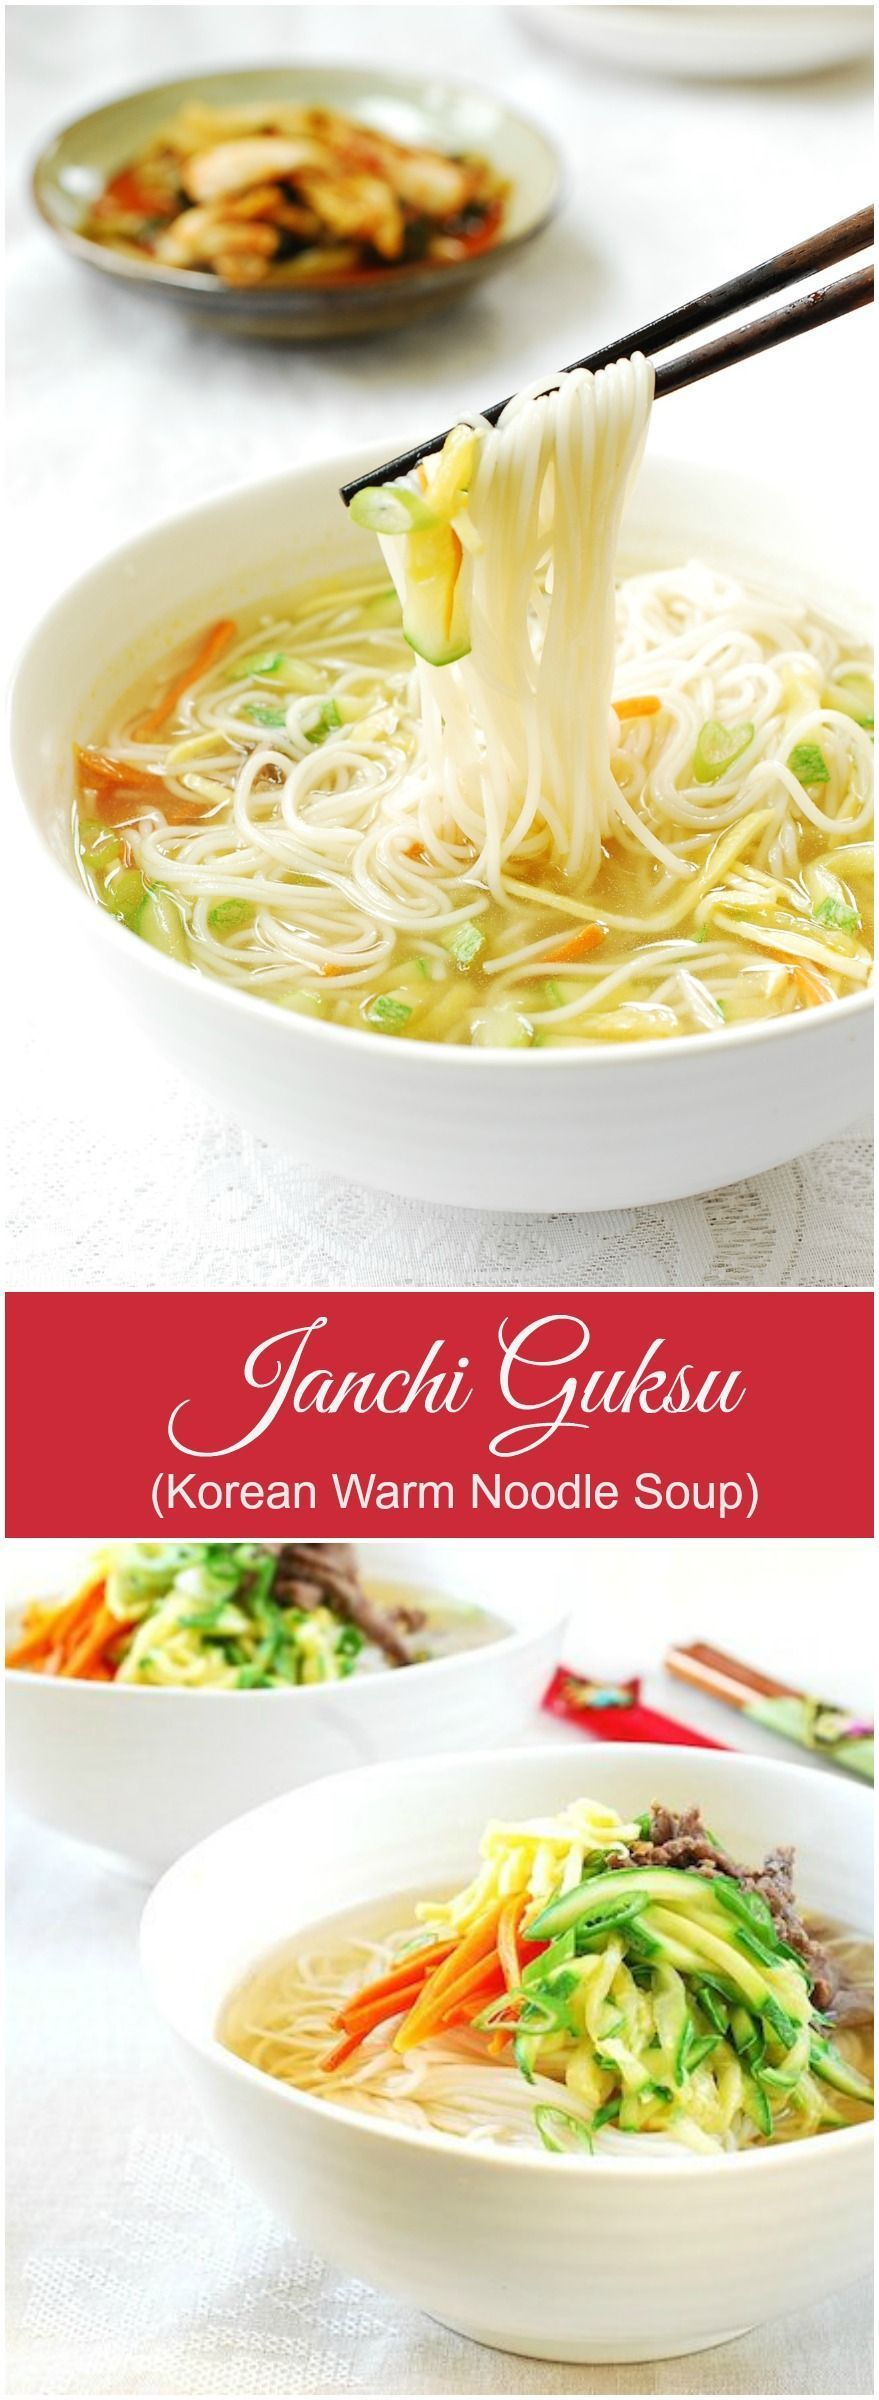 """(Korean Warm Noodle Soup) Janchi guksu, translated into """"banquet/feast noodles,"""" is a simple warm noodle dish that is made with a clear anchovy or beef broth.Janchi guksu, translated into """"banquet/feast noodles,"""" is a simple warm noodle dish that is made with a clear anchovy or beef broth.Guksu (Korean Warm Noodle Soup) Janchi guksu, translated..."""